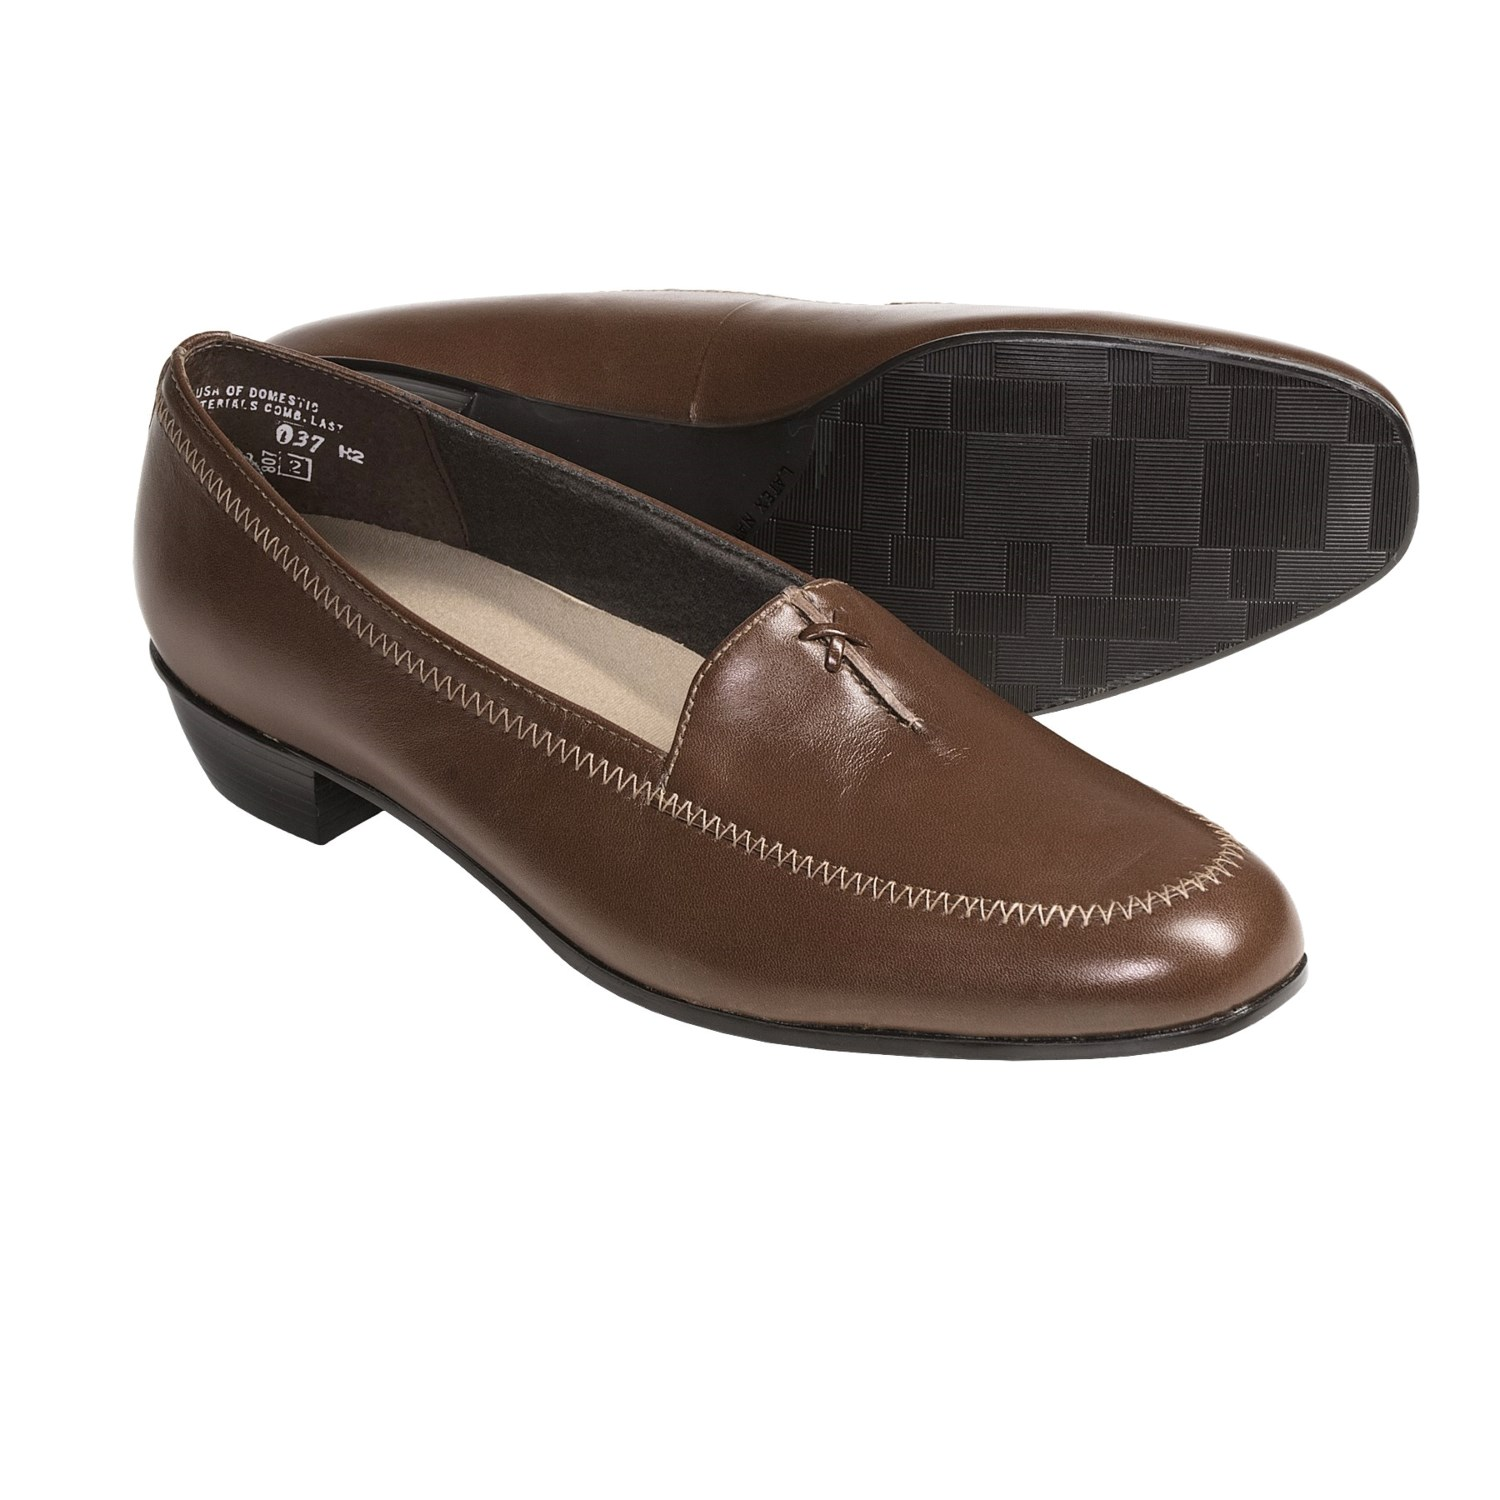 Munro American Lauren Loafer Shoes (For Women) in Luggage Kid